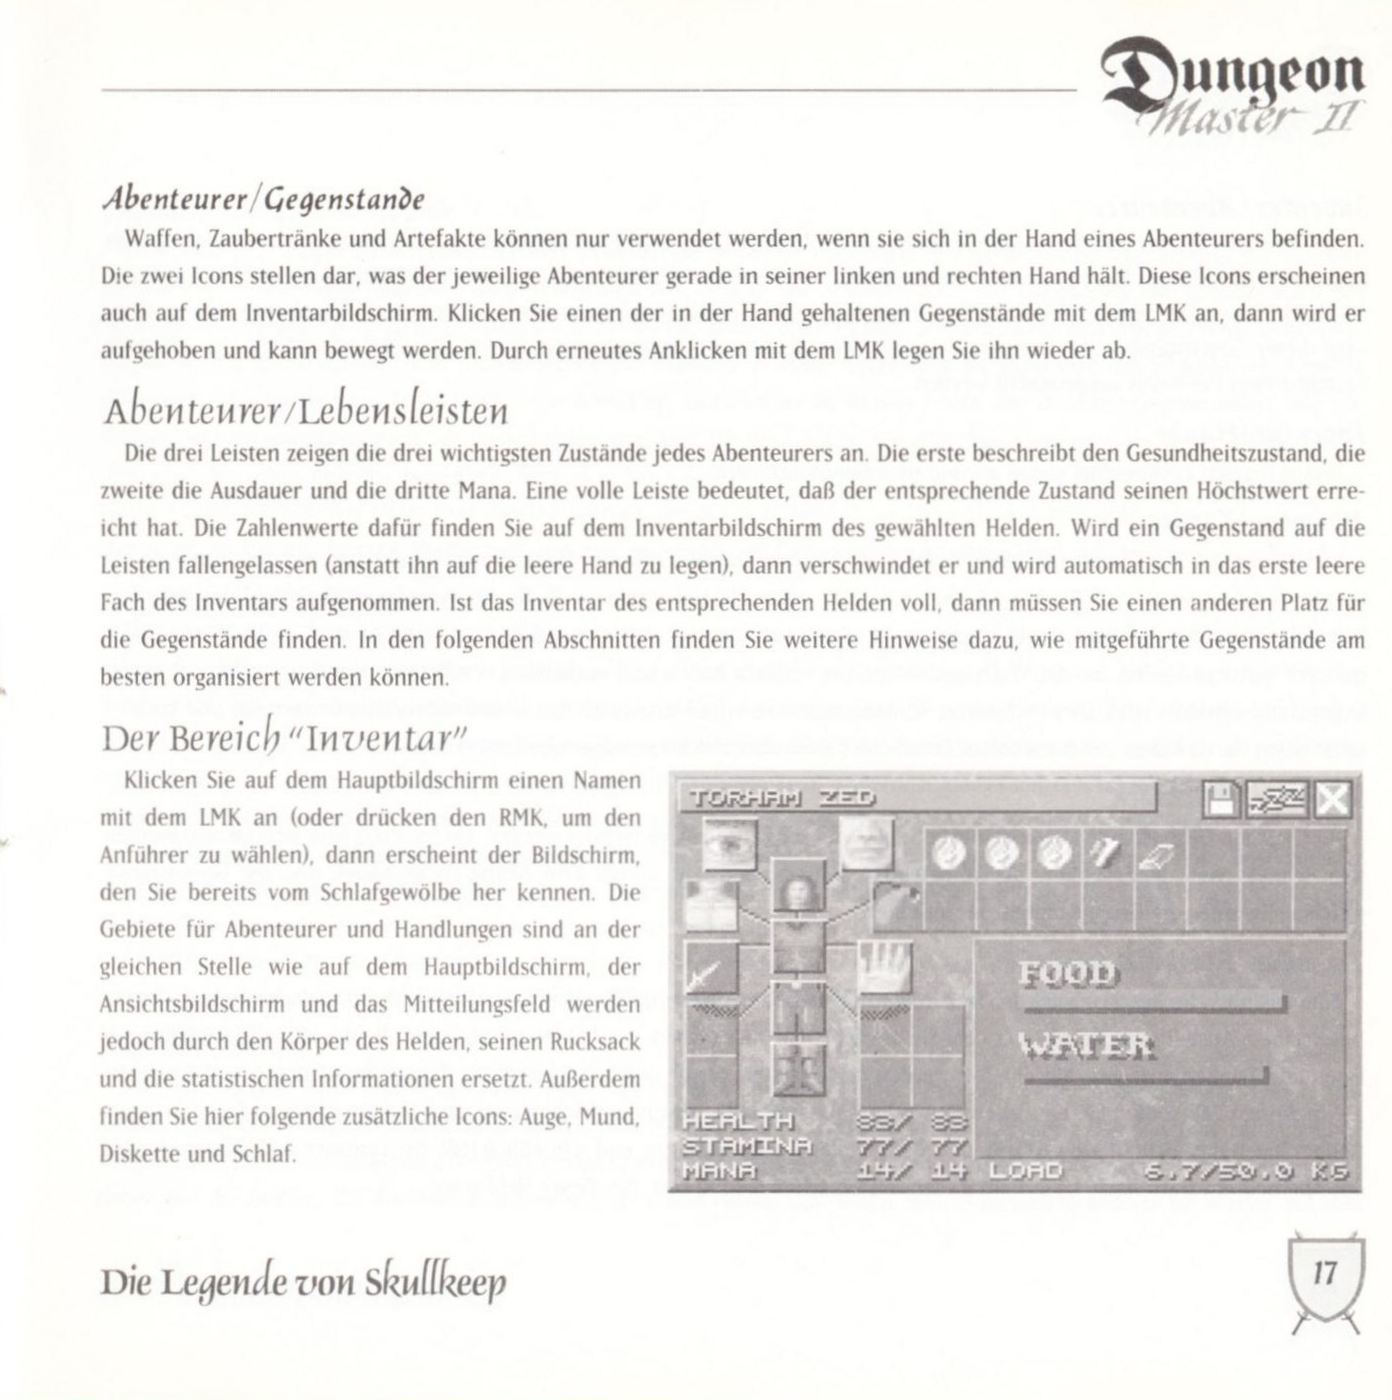 Game - Dungeon Master II - DE - PC - Blackmarket With Booklet - Booklet - Page 019 - Scan